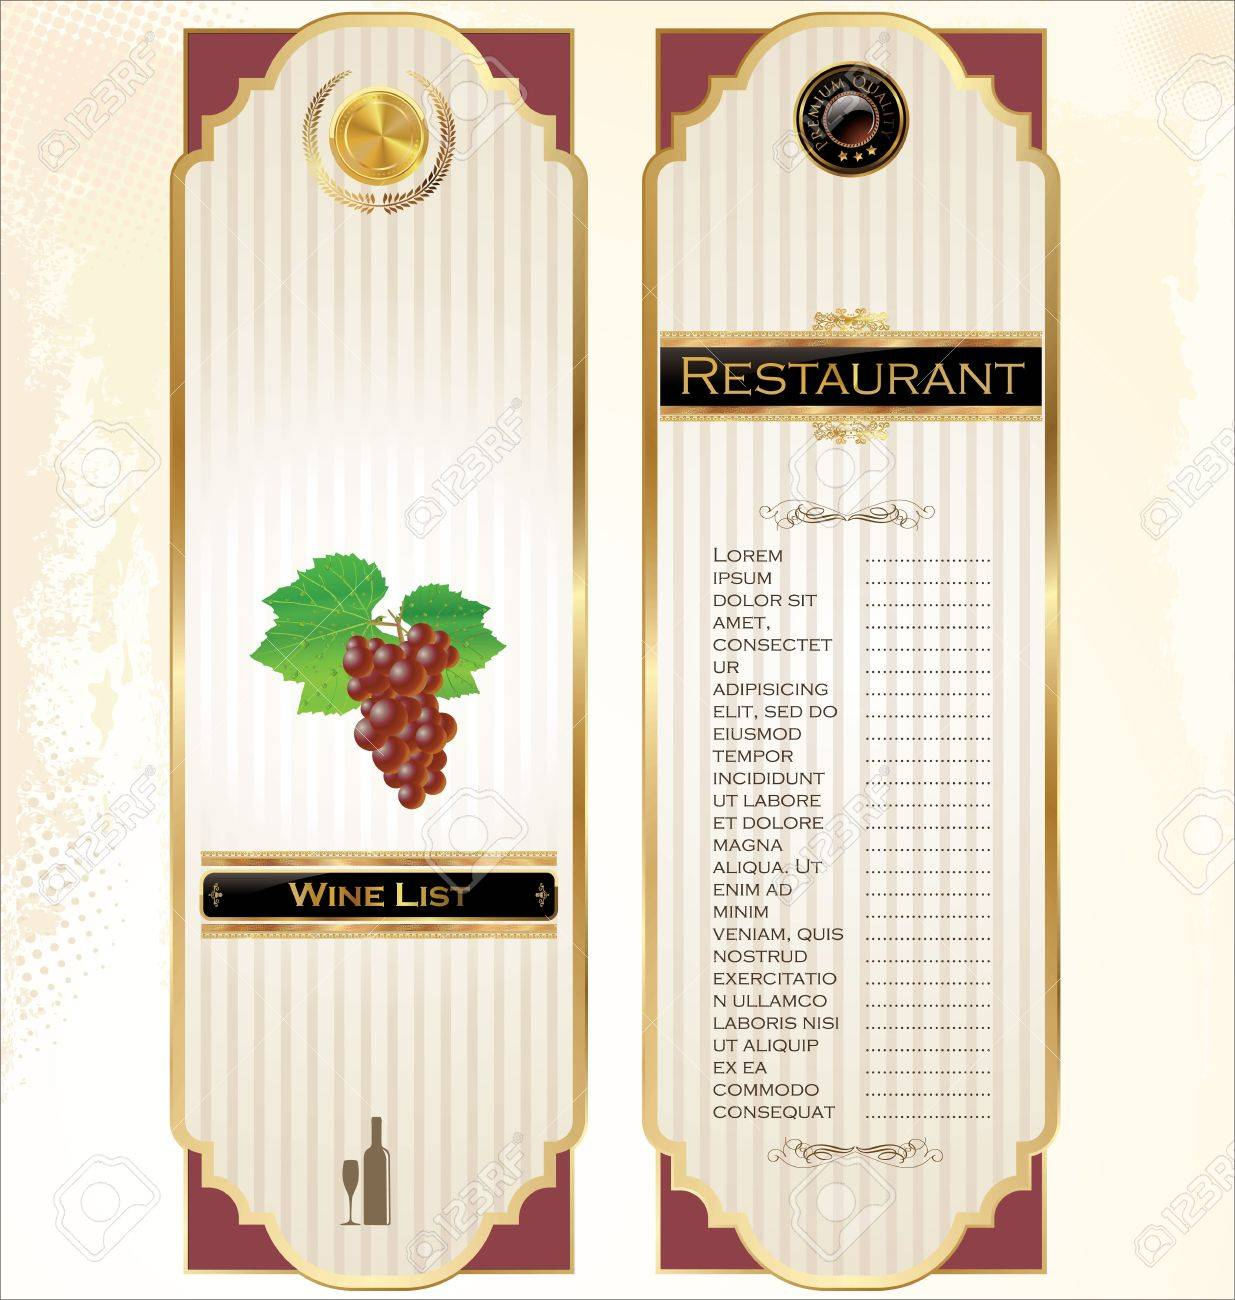 Wine menu template with a price list royalty free cliparts wine menu template with a price list stock vector 19462911 pronofoot35fo Gallery